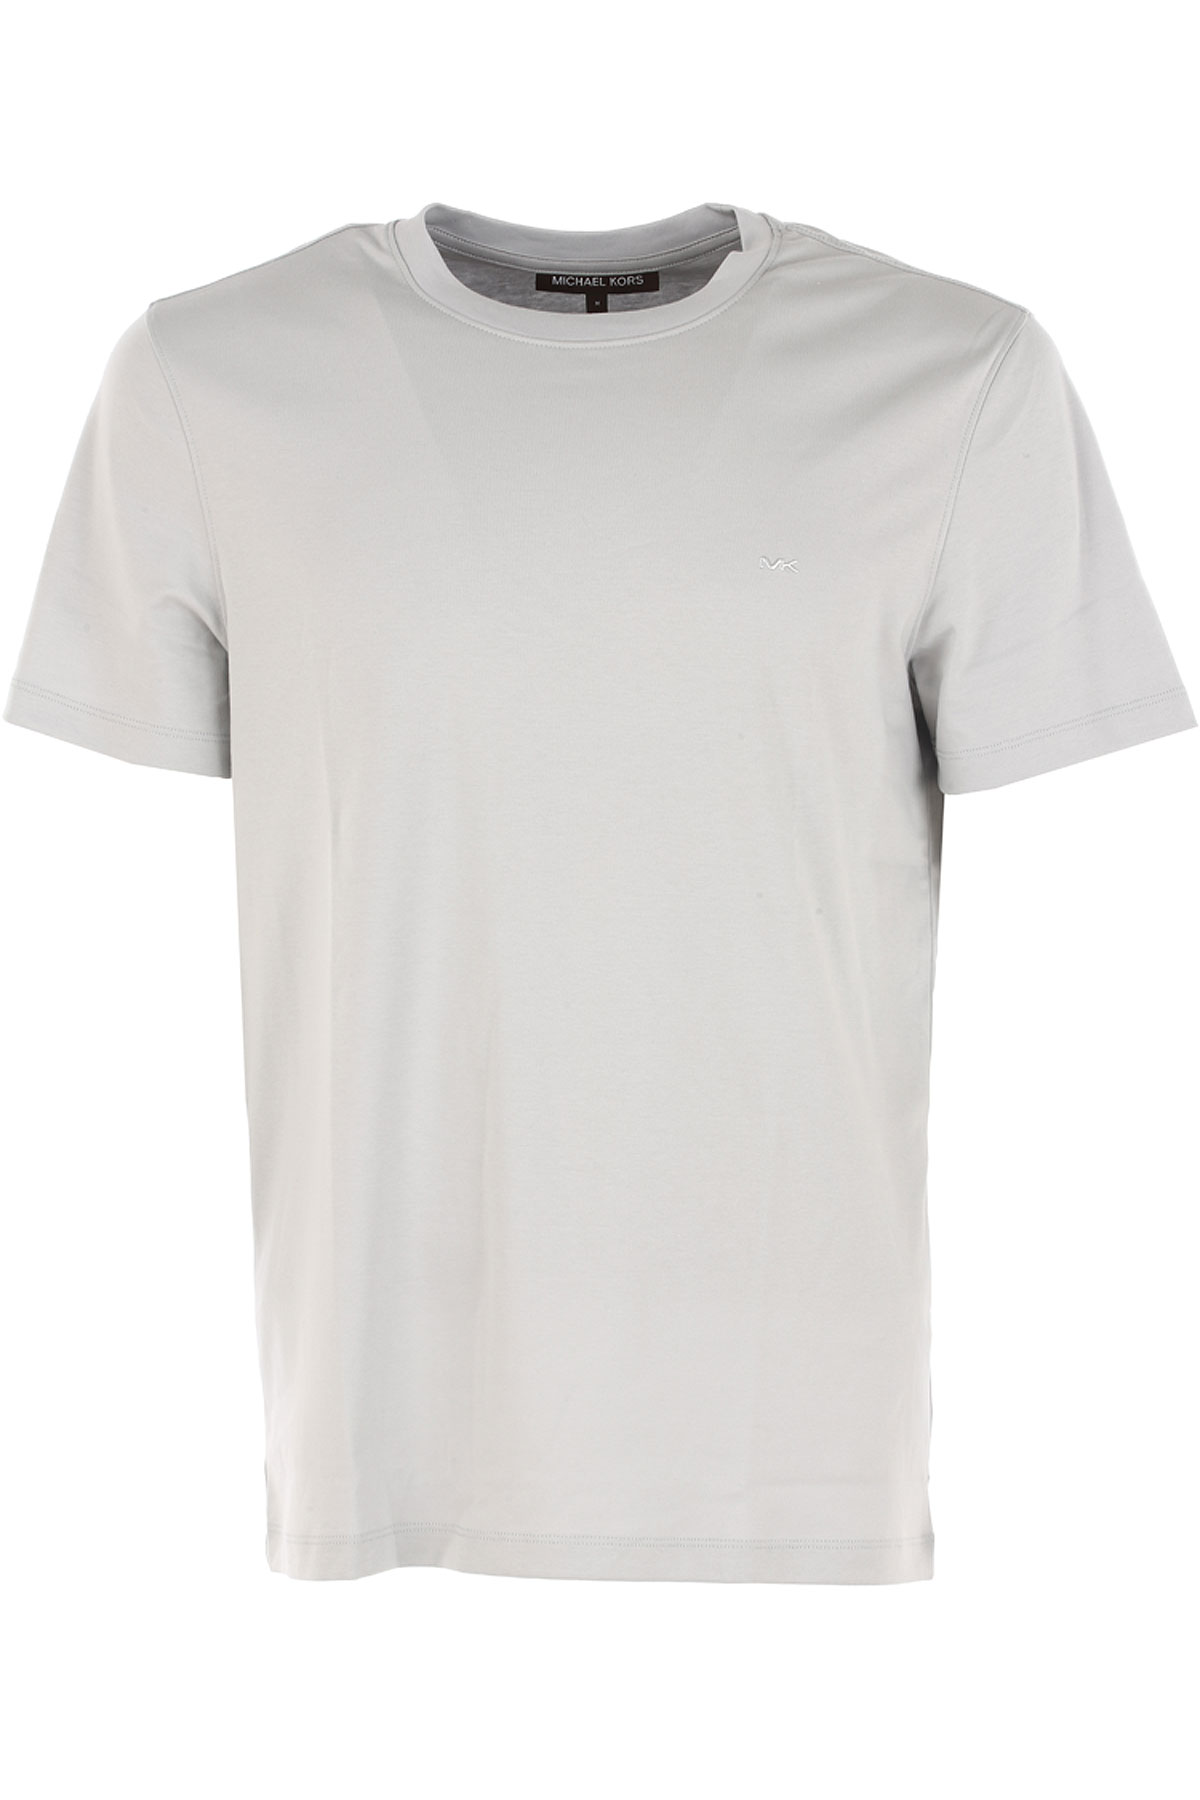 Michael Kors T-Shirt for Men On Sale in Outlet, Ice Grey, Cotton, 2017, L S XL